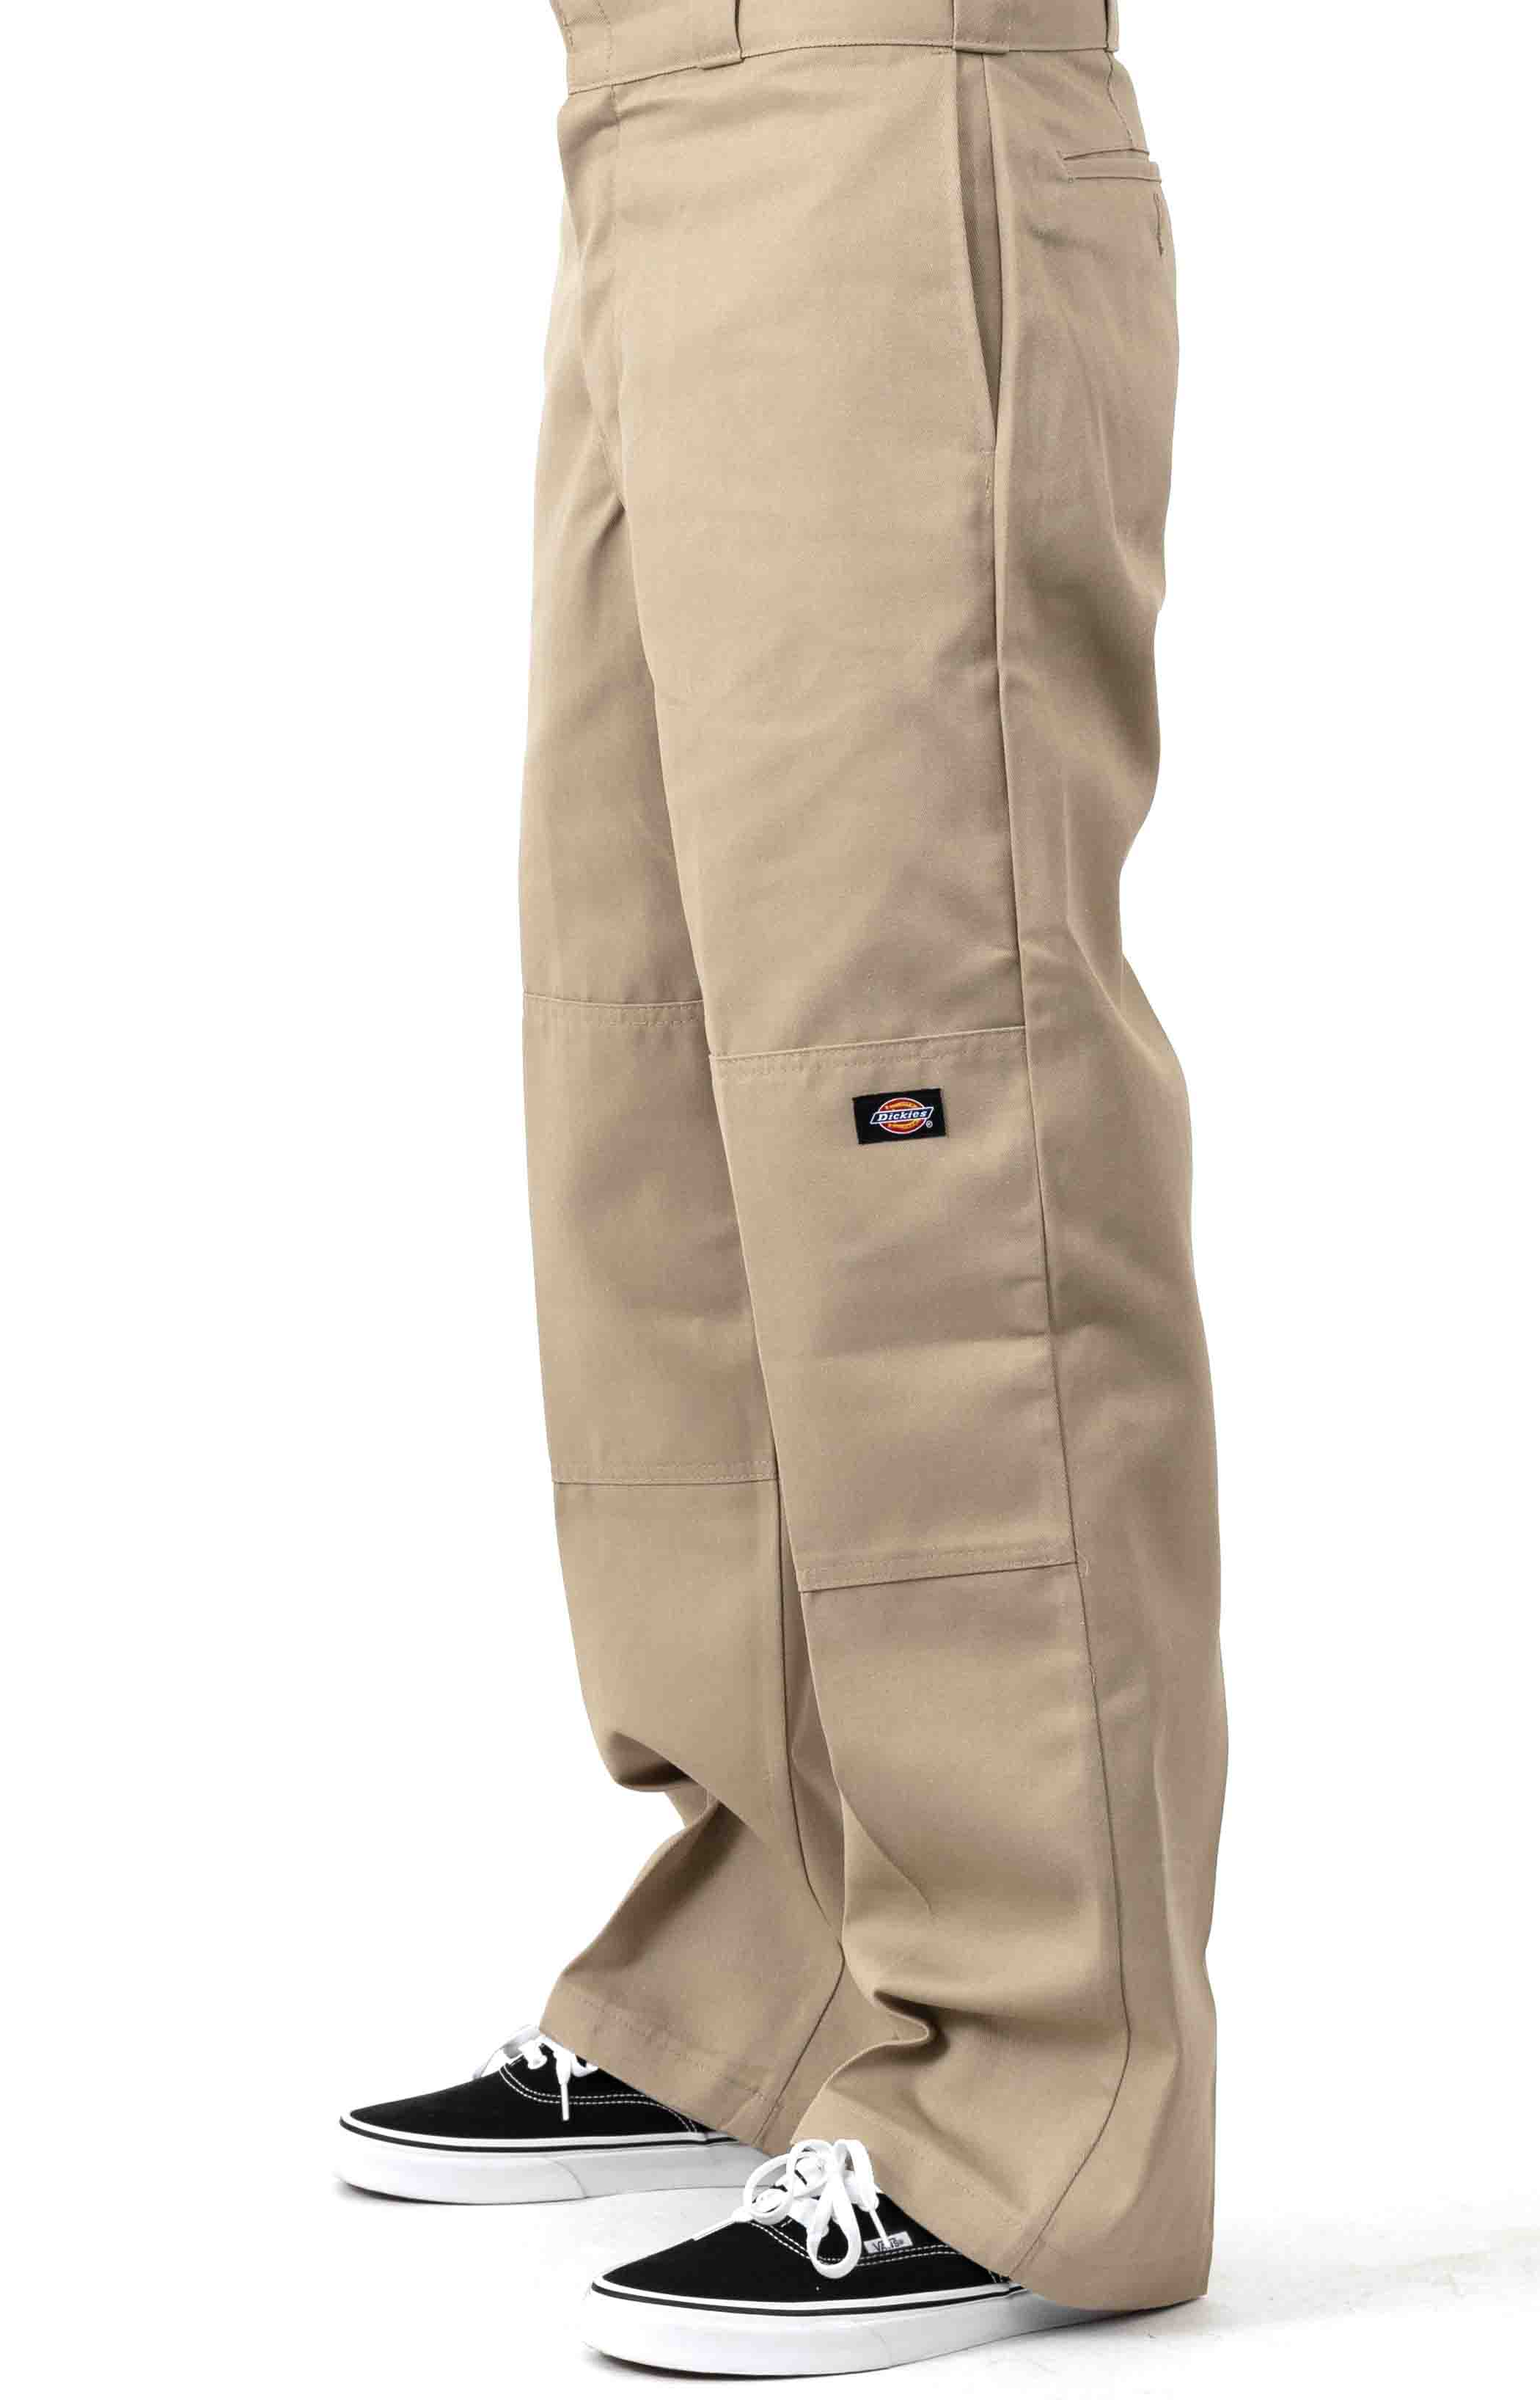 (85283KH) Loose Fit Double Knee Work Pants - Military Khaki  2